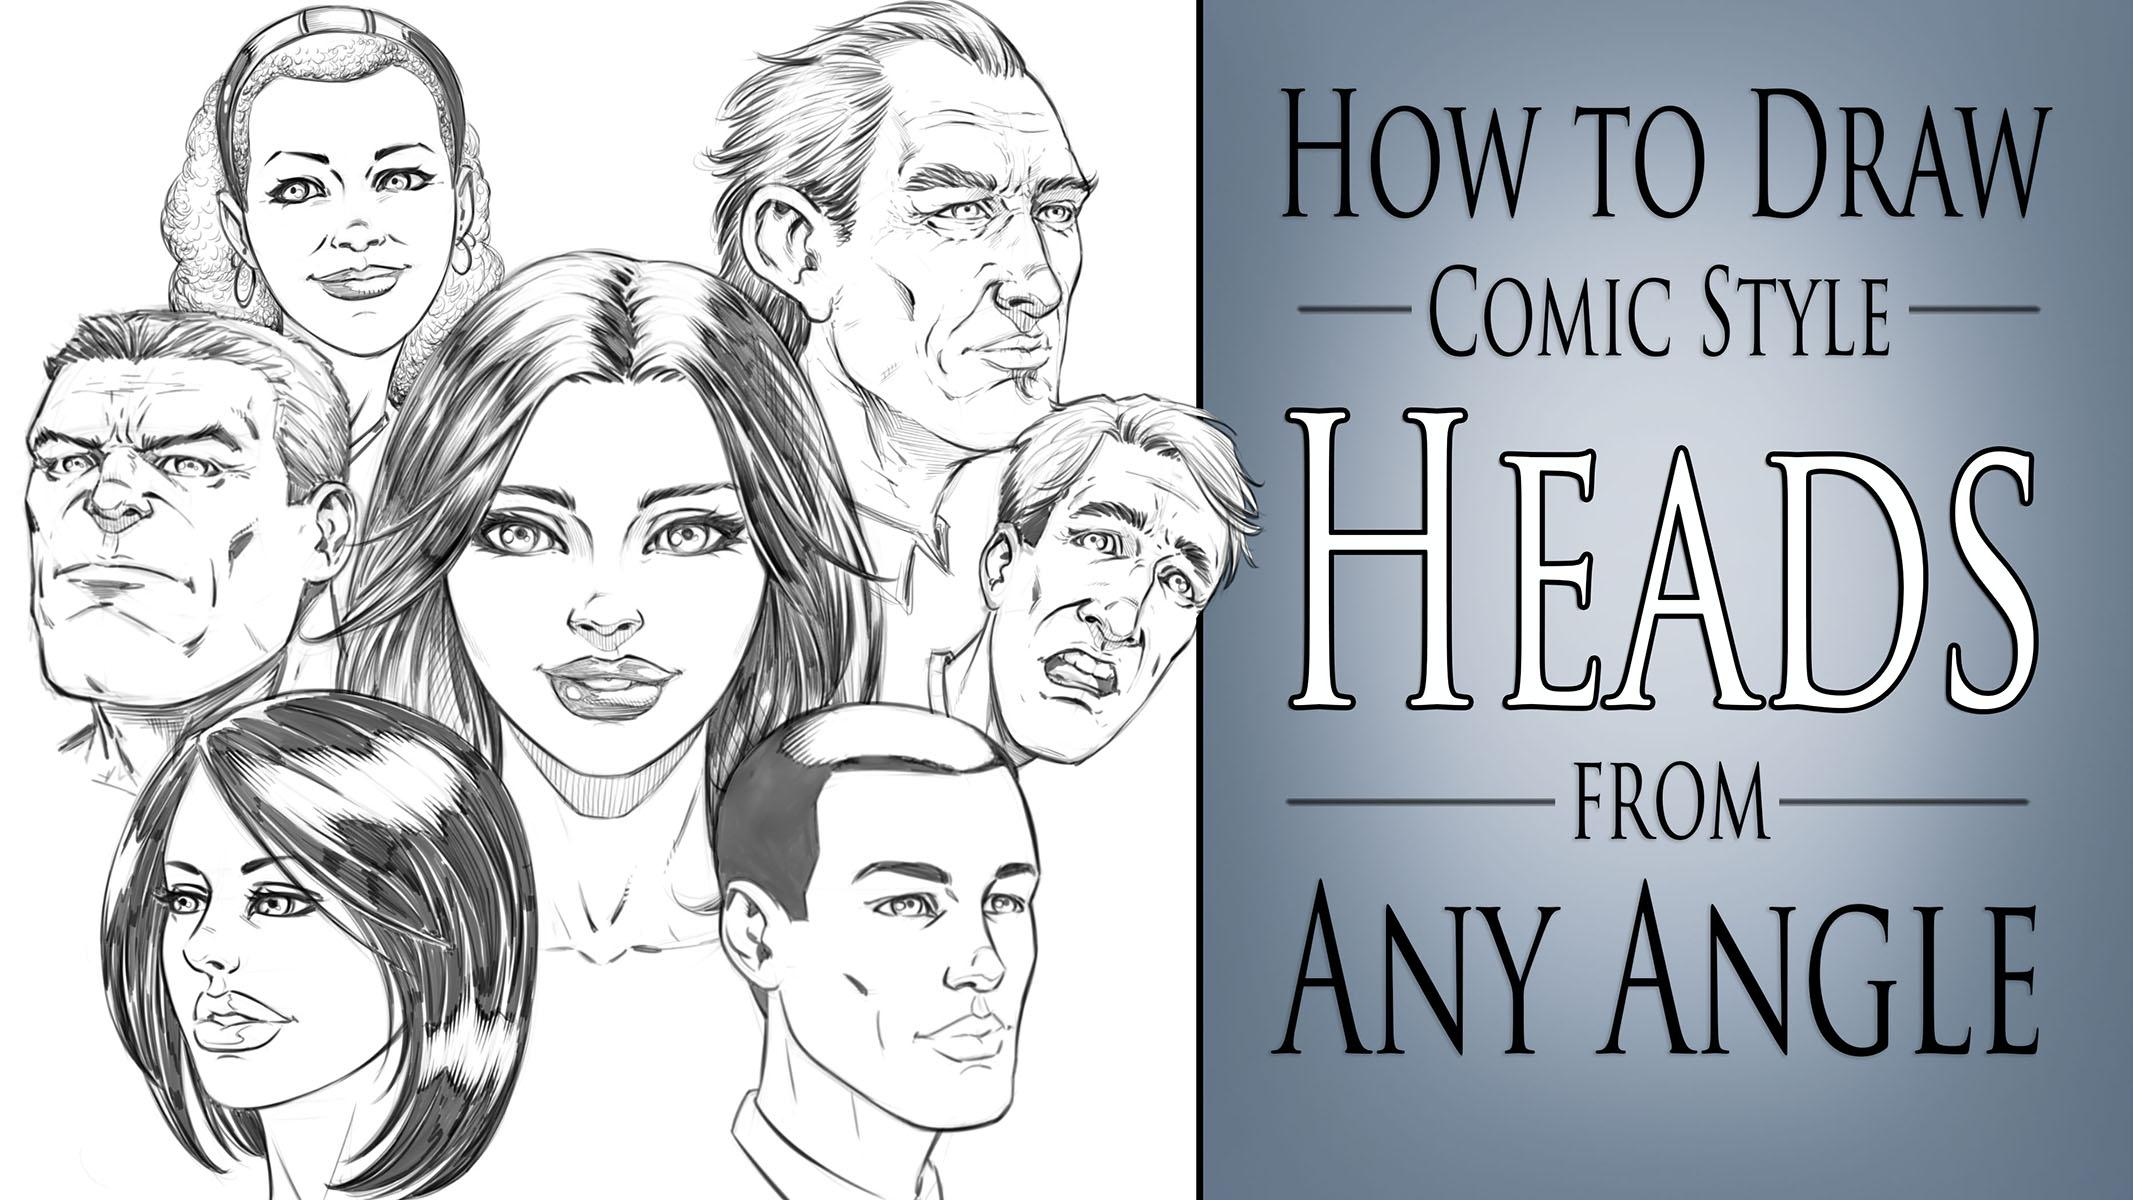 How To Draw Comic Style Heads Step By Step From Any Angle